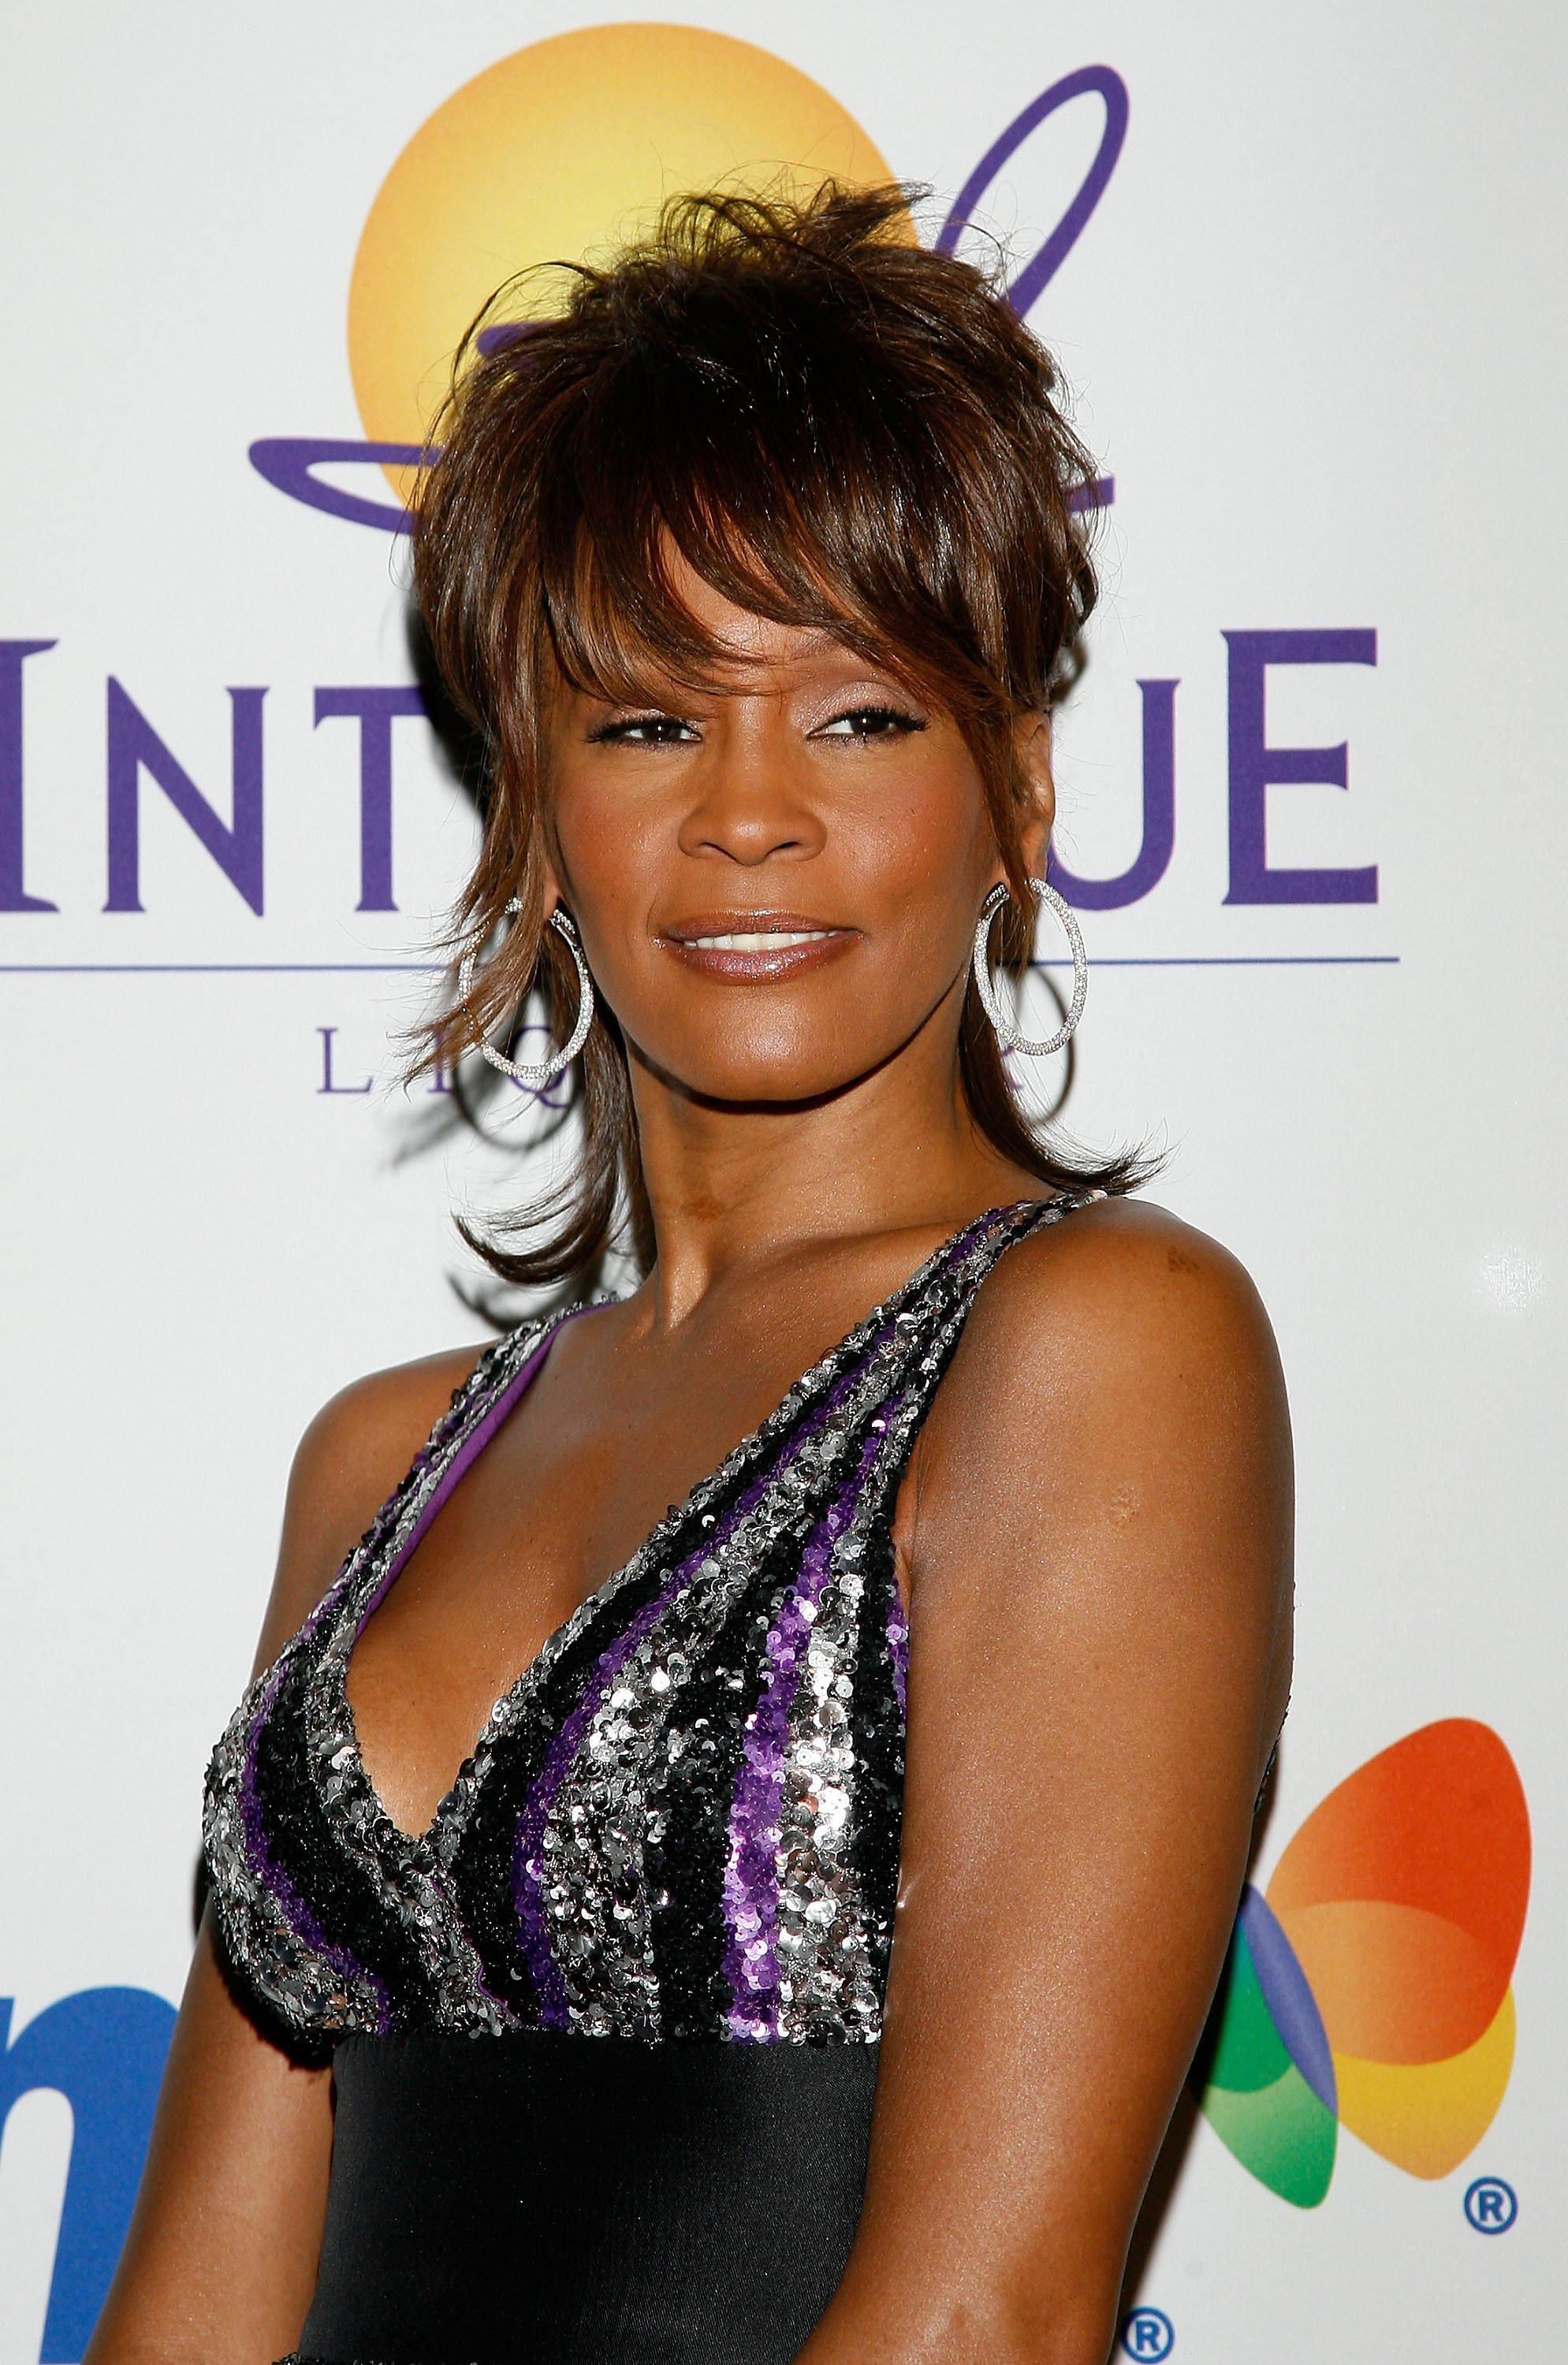 Whitney Houston at the Clive Davis Pre-Grammy Party on Feb. 9, 2008 in Beverly Hills, California. | Photo: Getty Images